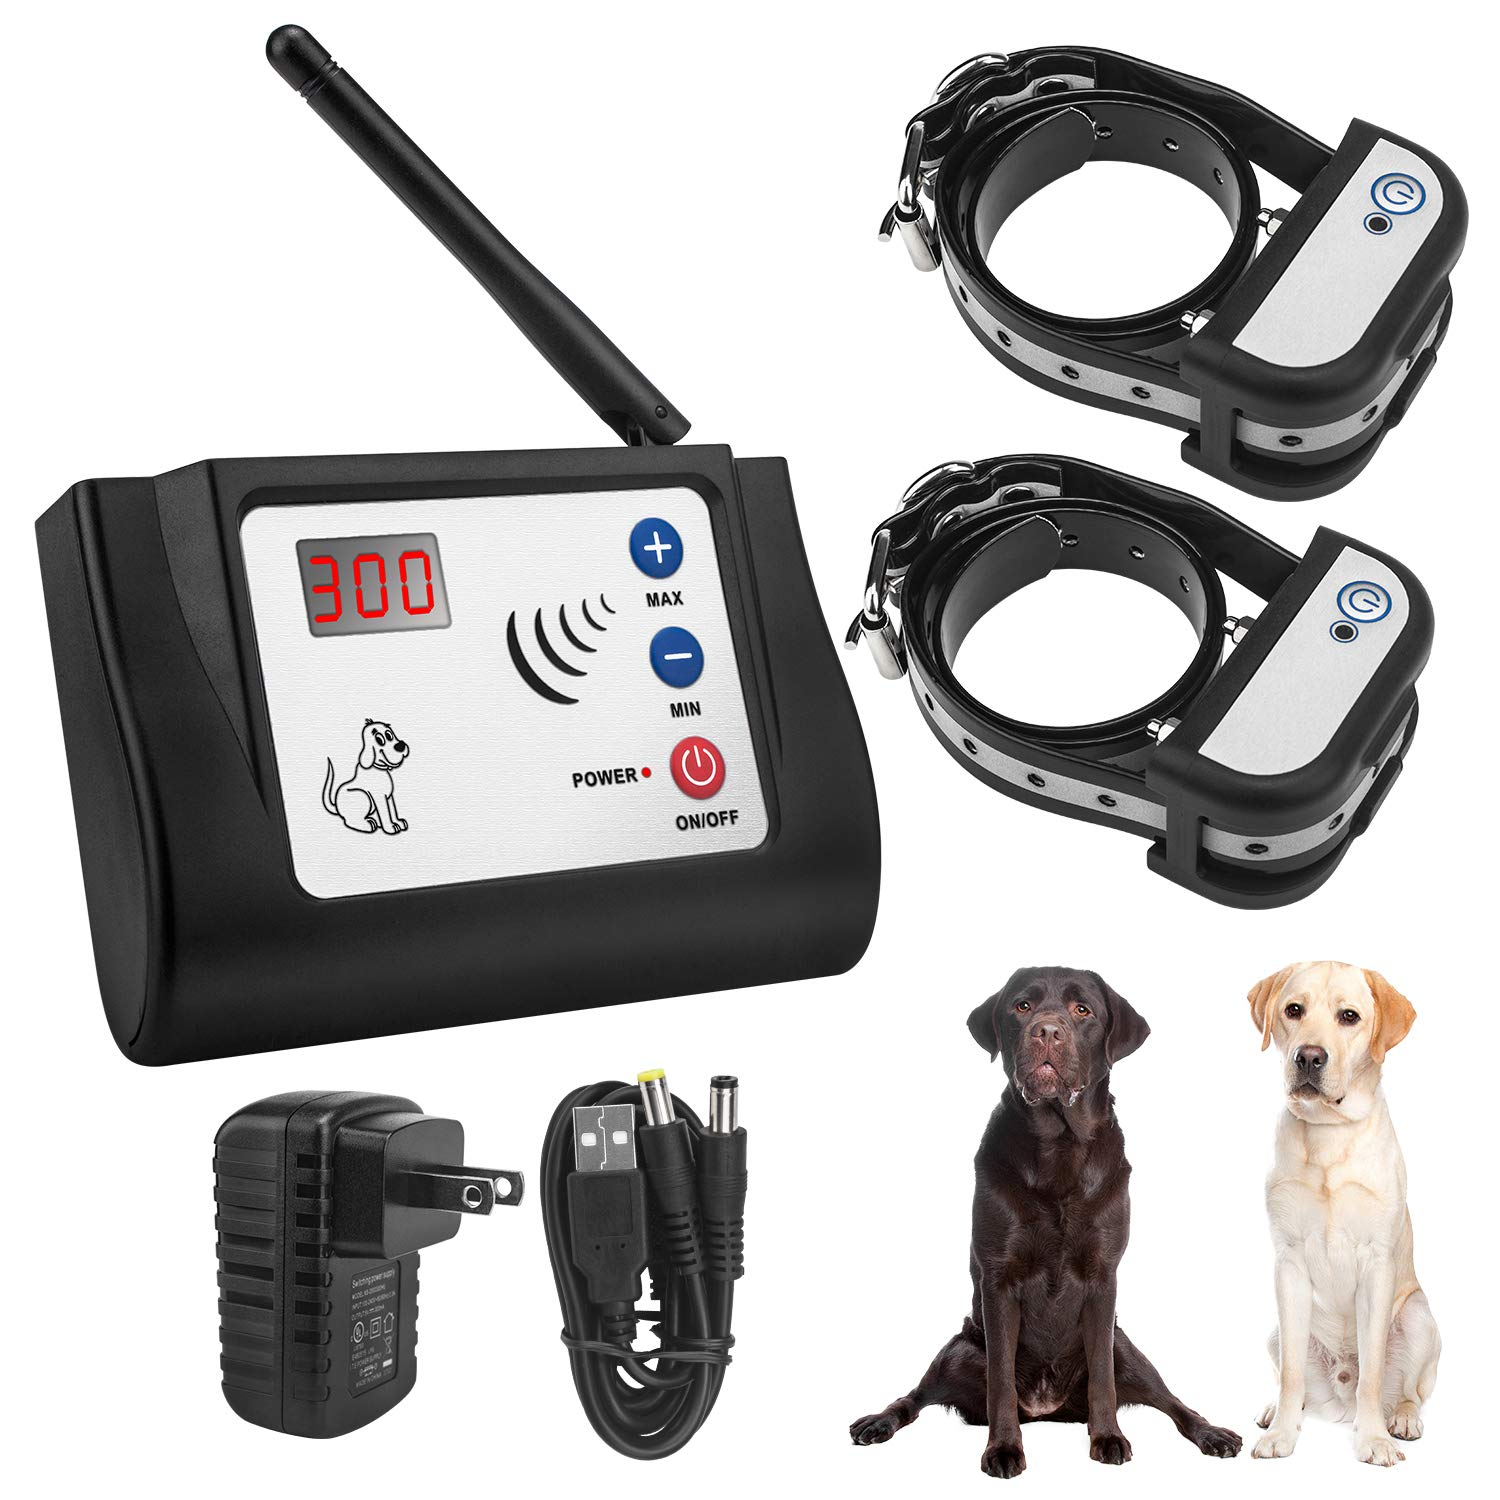 Beinhome Wireless Electric Pet Dog Fence Electronic Invisible Fence Outdoor Wireless Fence for 2 Pet Dogs Rechargeable Shock Tone Correction